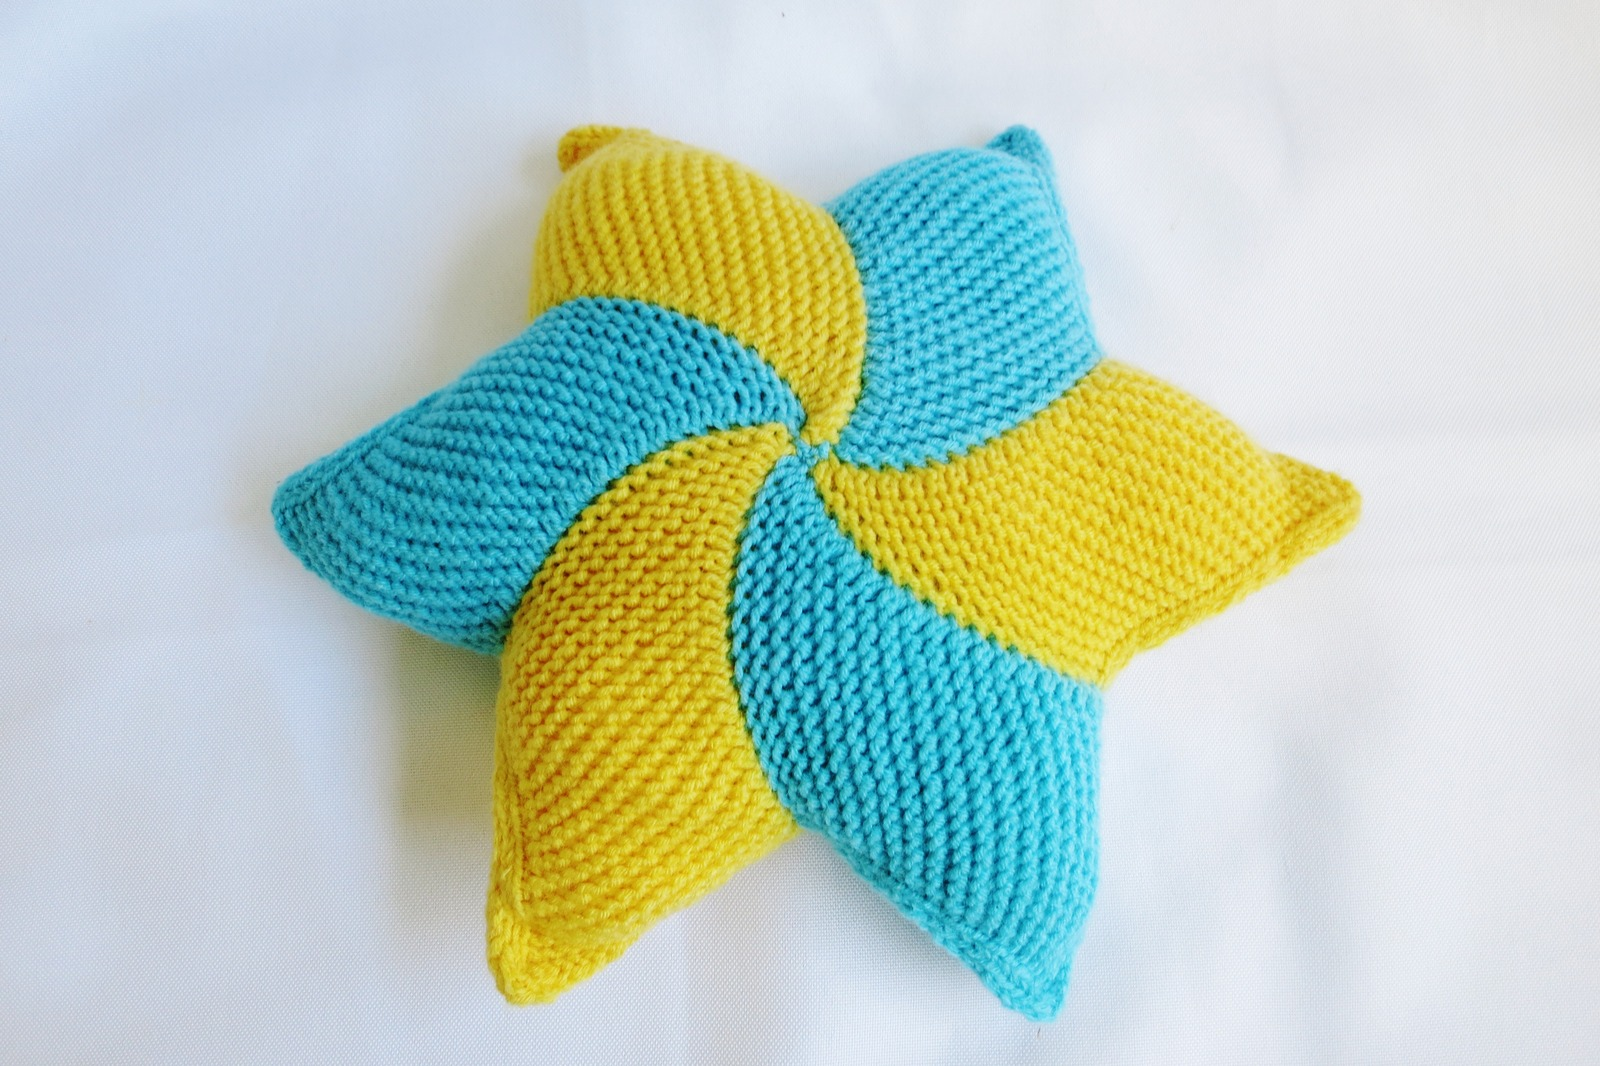 Handmade decorative star pillow knitted home decor rustic azure yellow pillows - Home accessories yellow ...